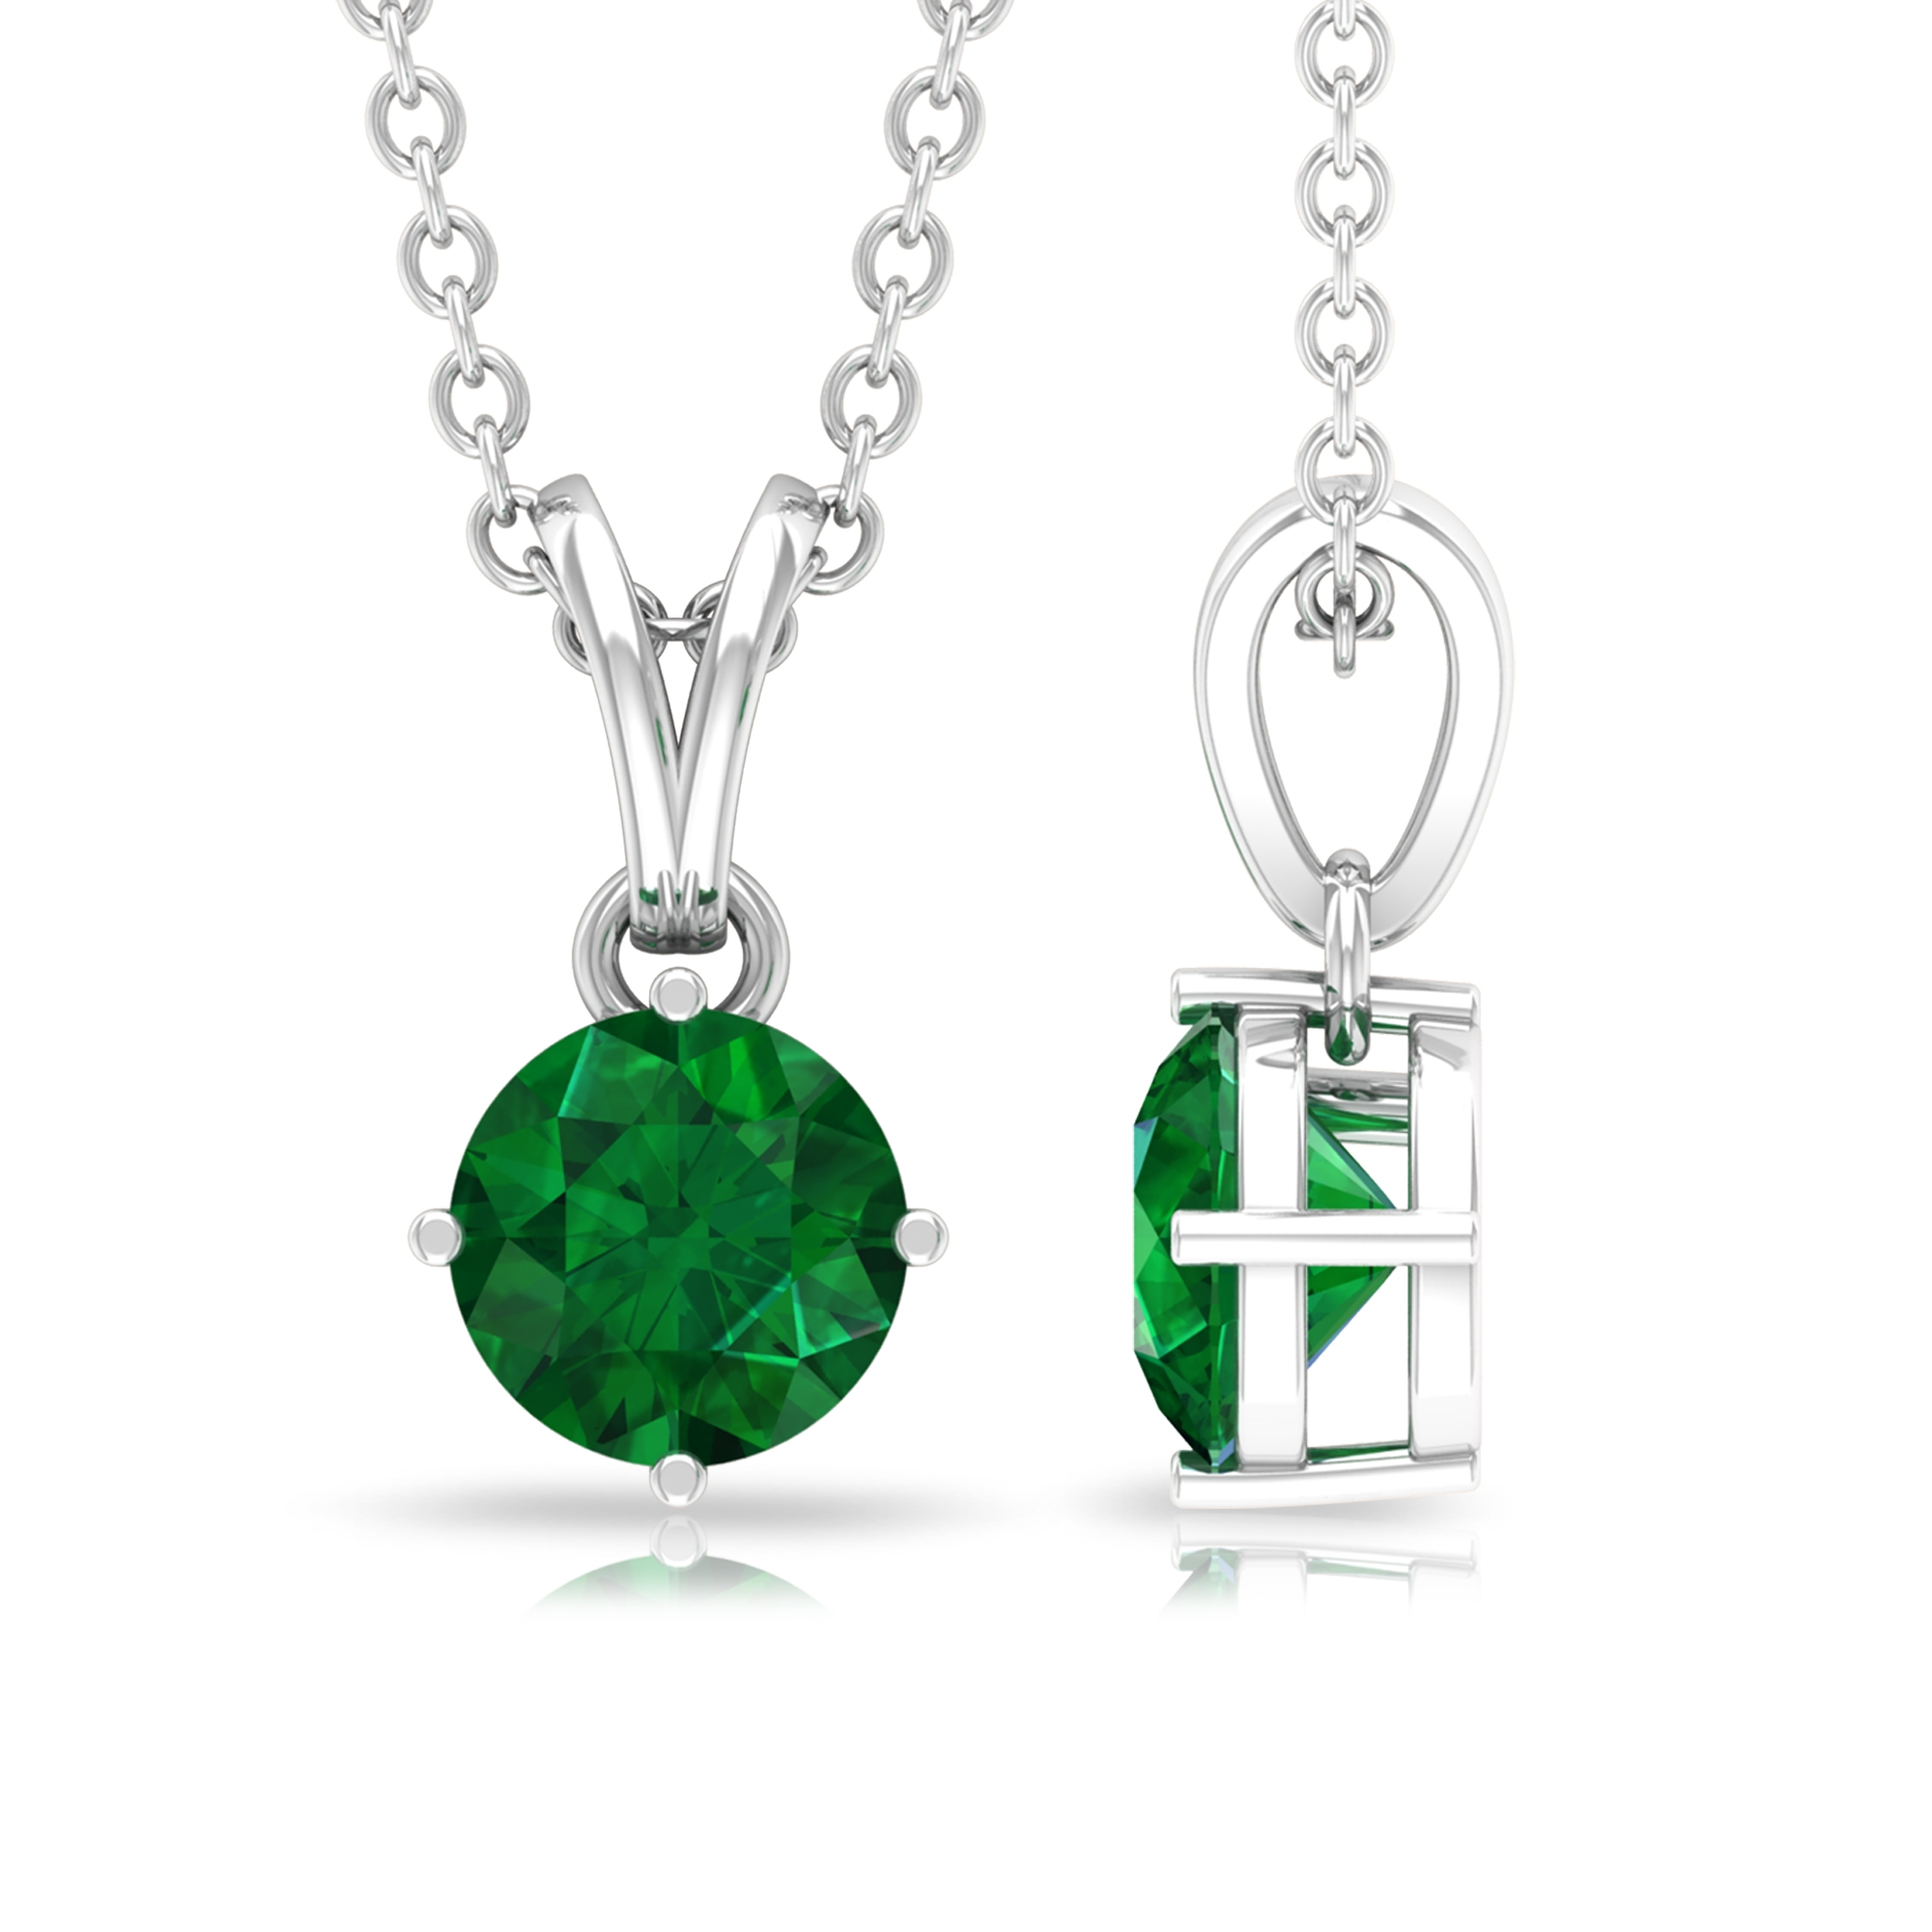 May Birthstone 8 MM Four Prong Diagonal Set Round Cut Solitaire Emerald Pendant with Rabbit Ear Bail